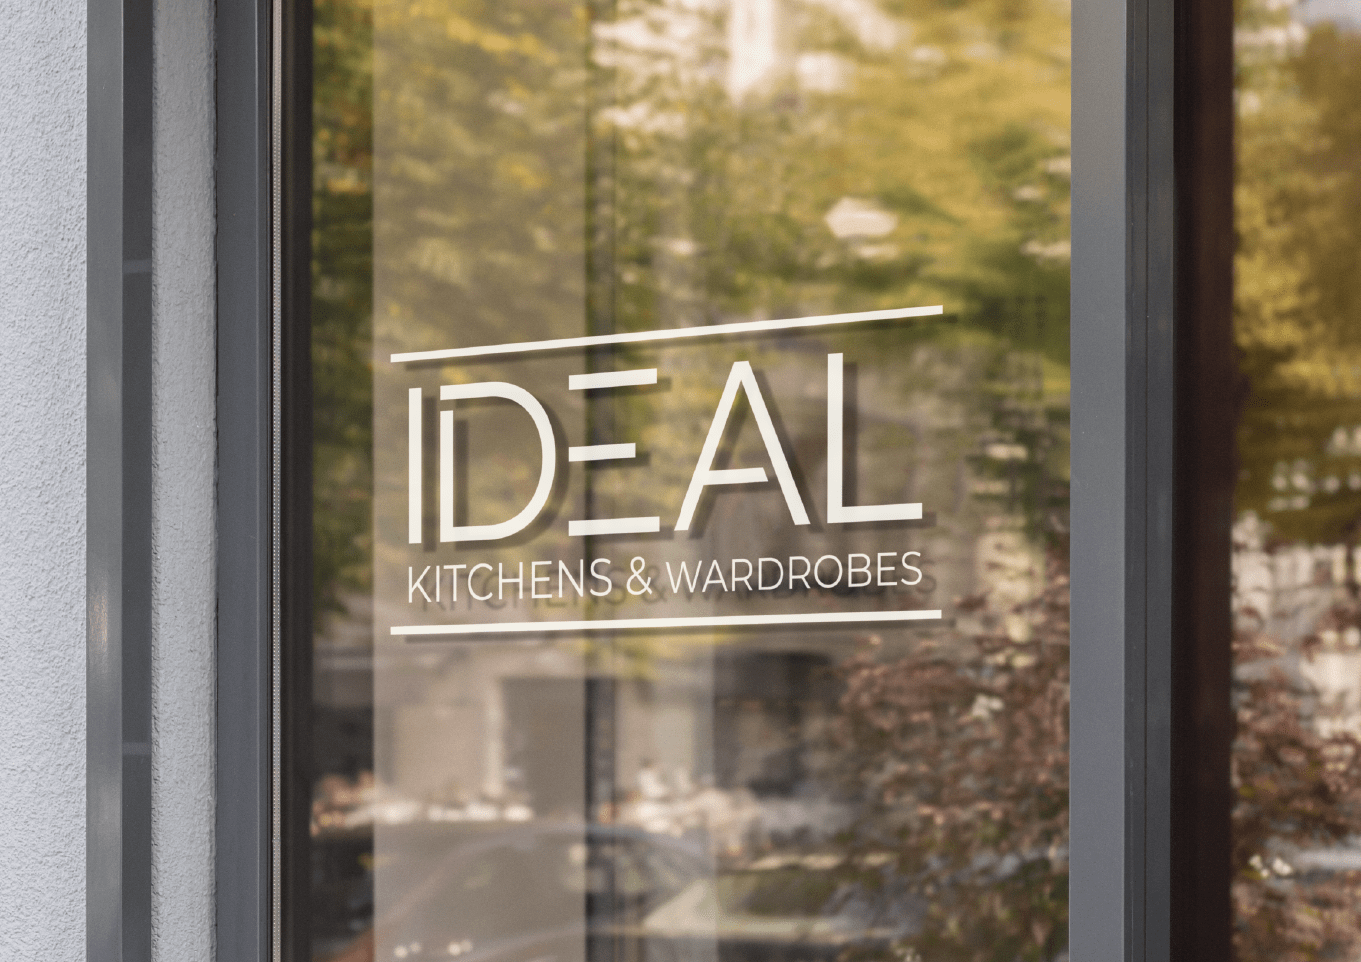 Ideal Kitchens Wall sign